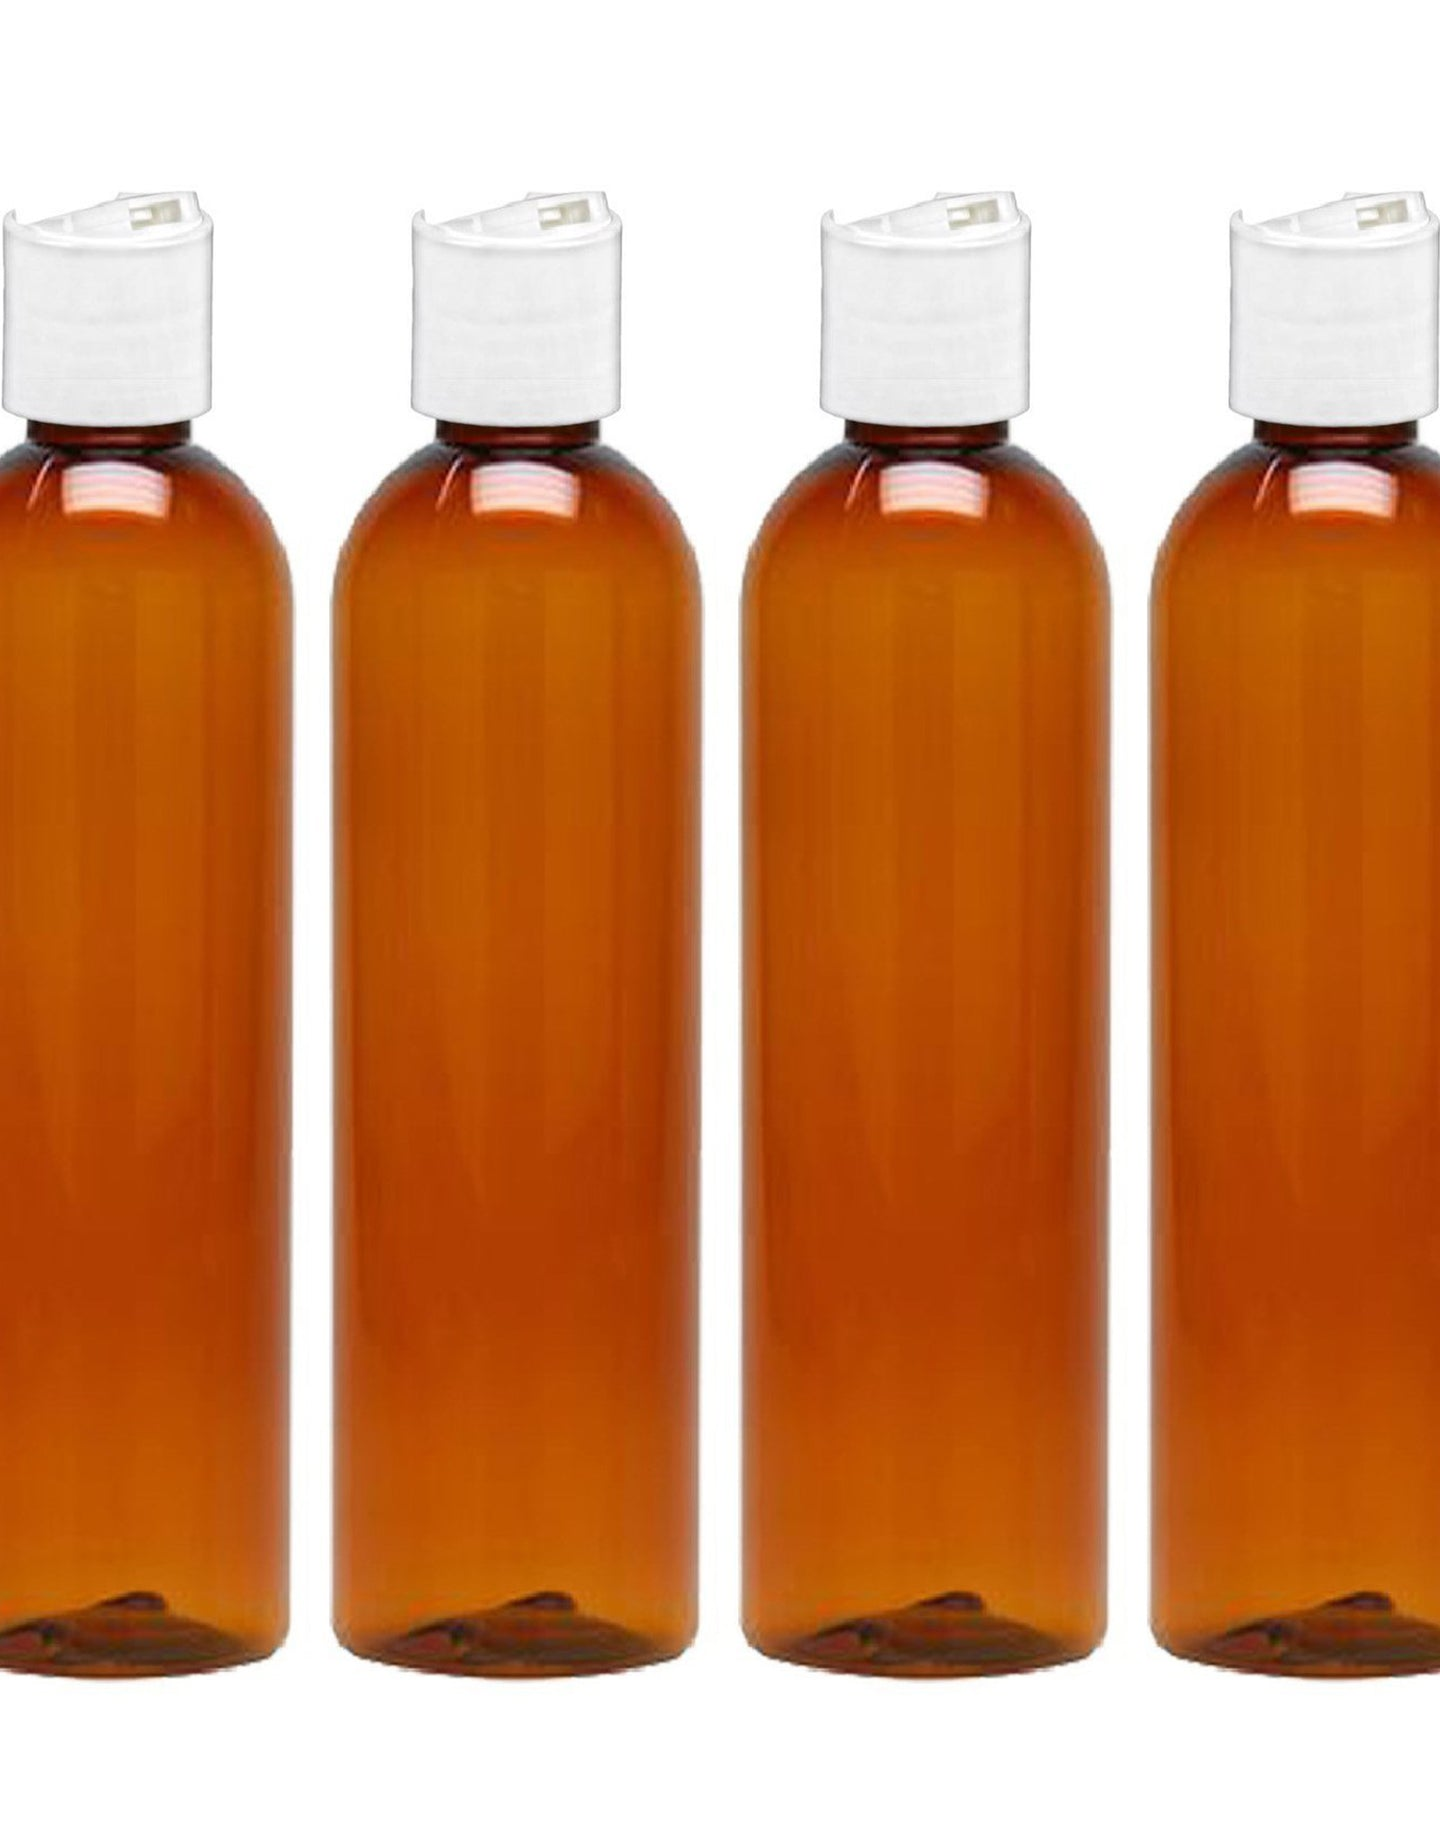 MoYo Natural Labs 8 oz Travel Bottles, Empty Travel Containers with Disc Caps, BPA Free PET Plastic Squeezable Toiletry/Cosmetic Bottles (Pack of 4, Amber)